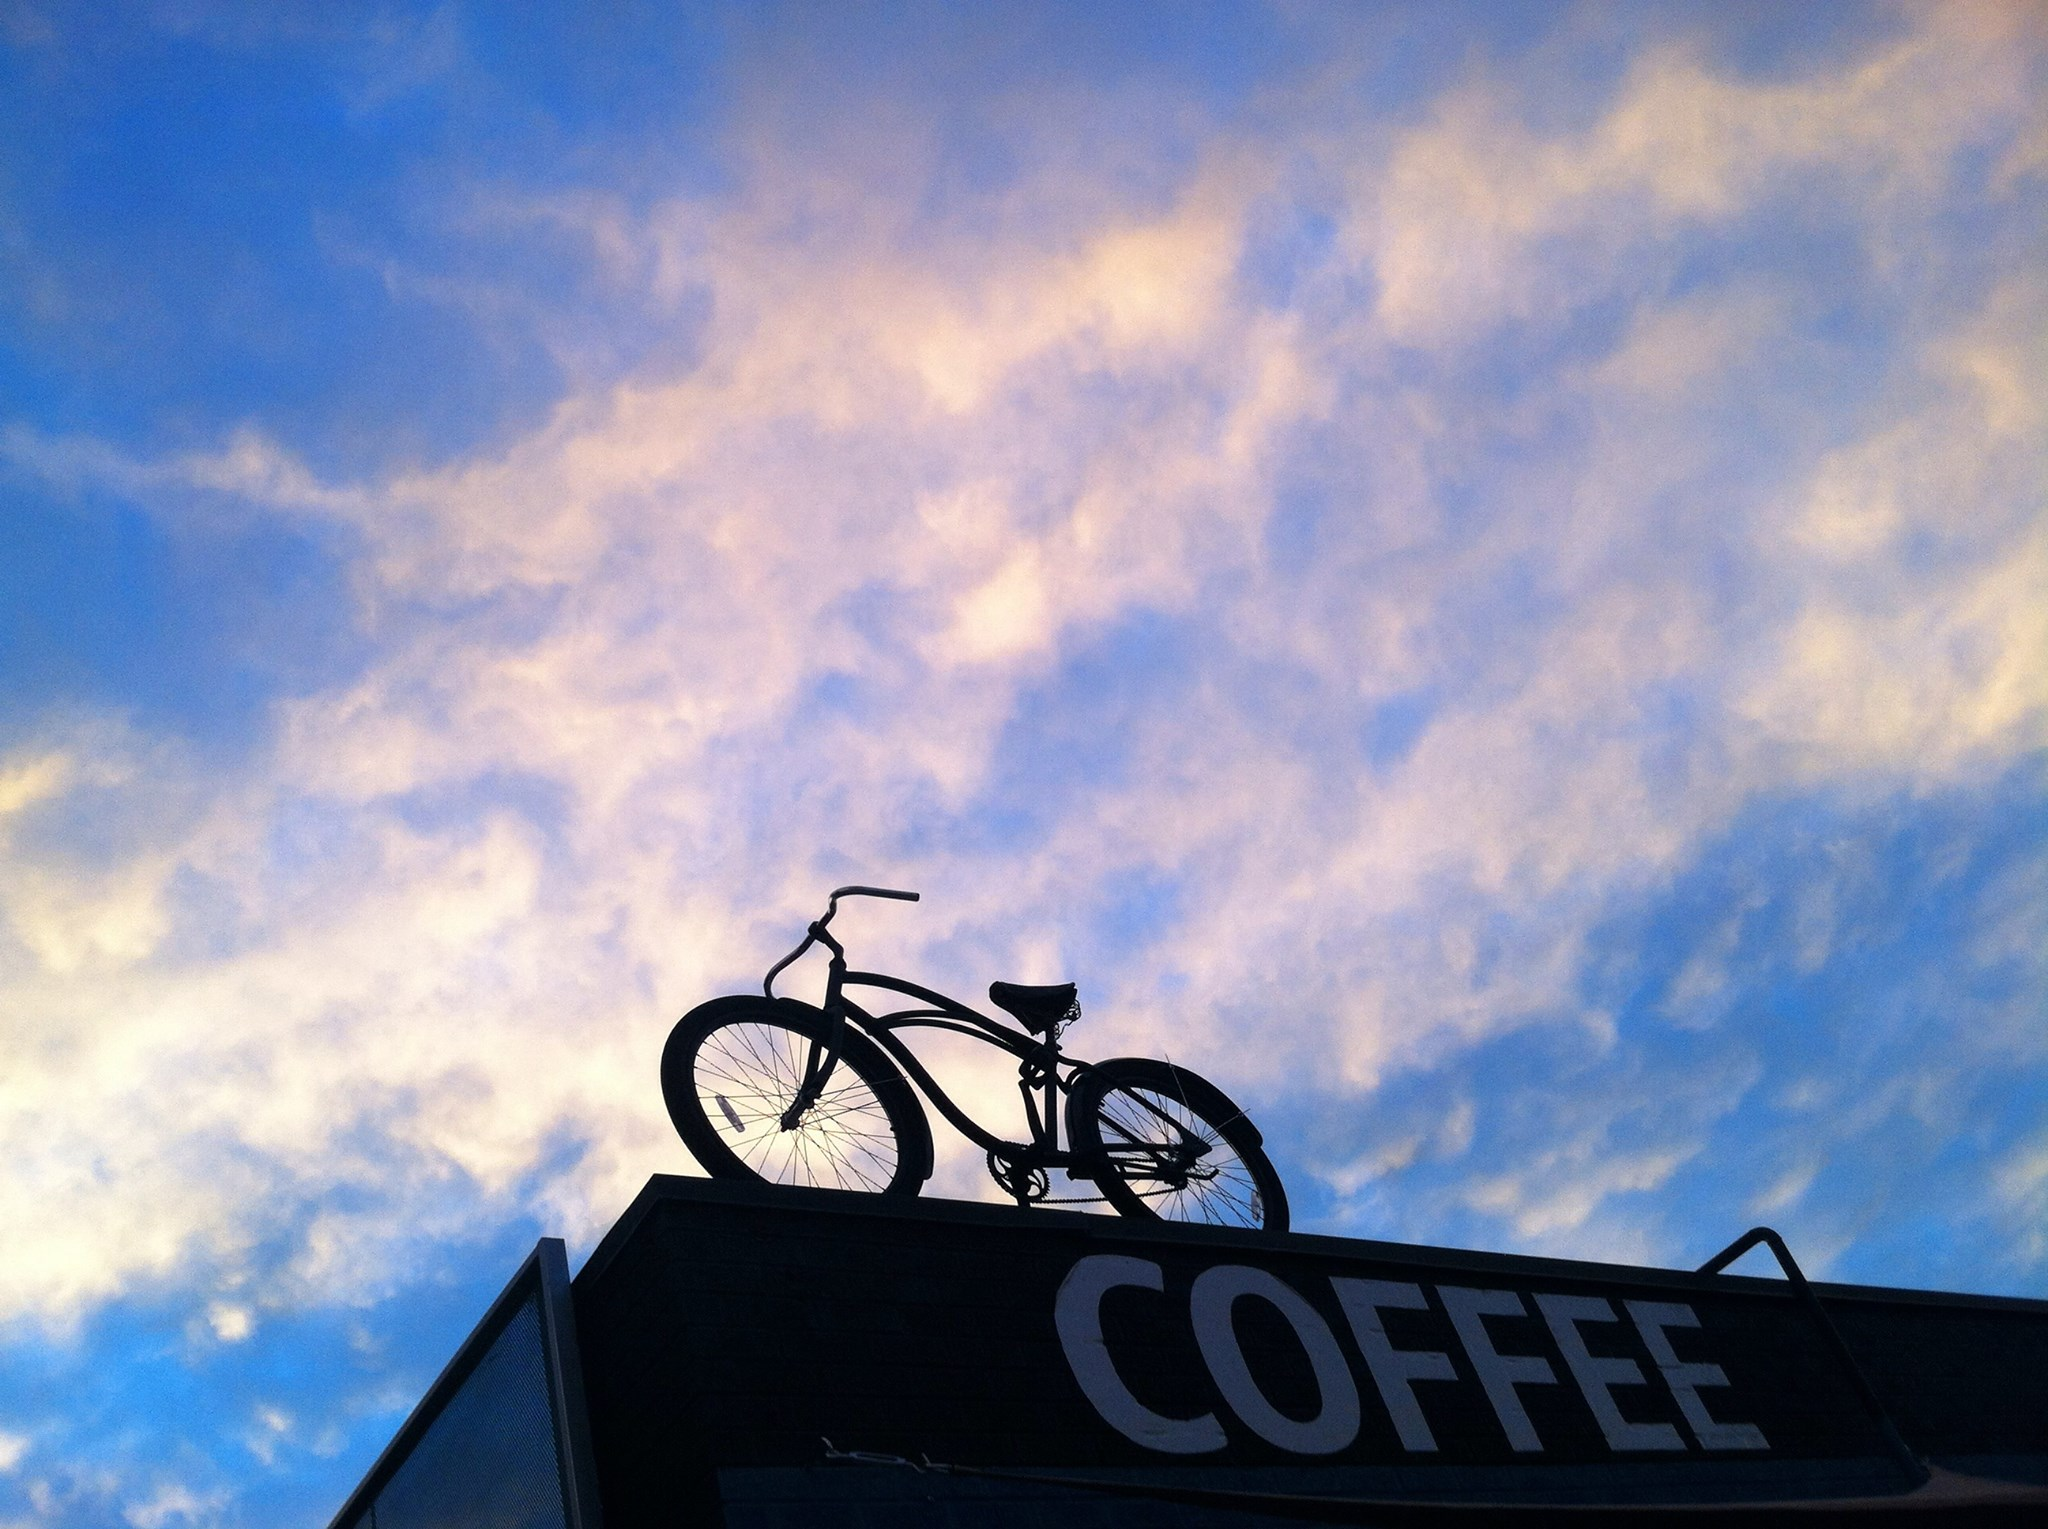 SloHi Bike and Coffee at Sunset